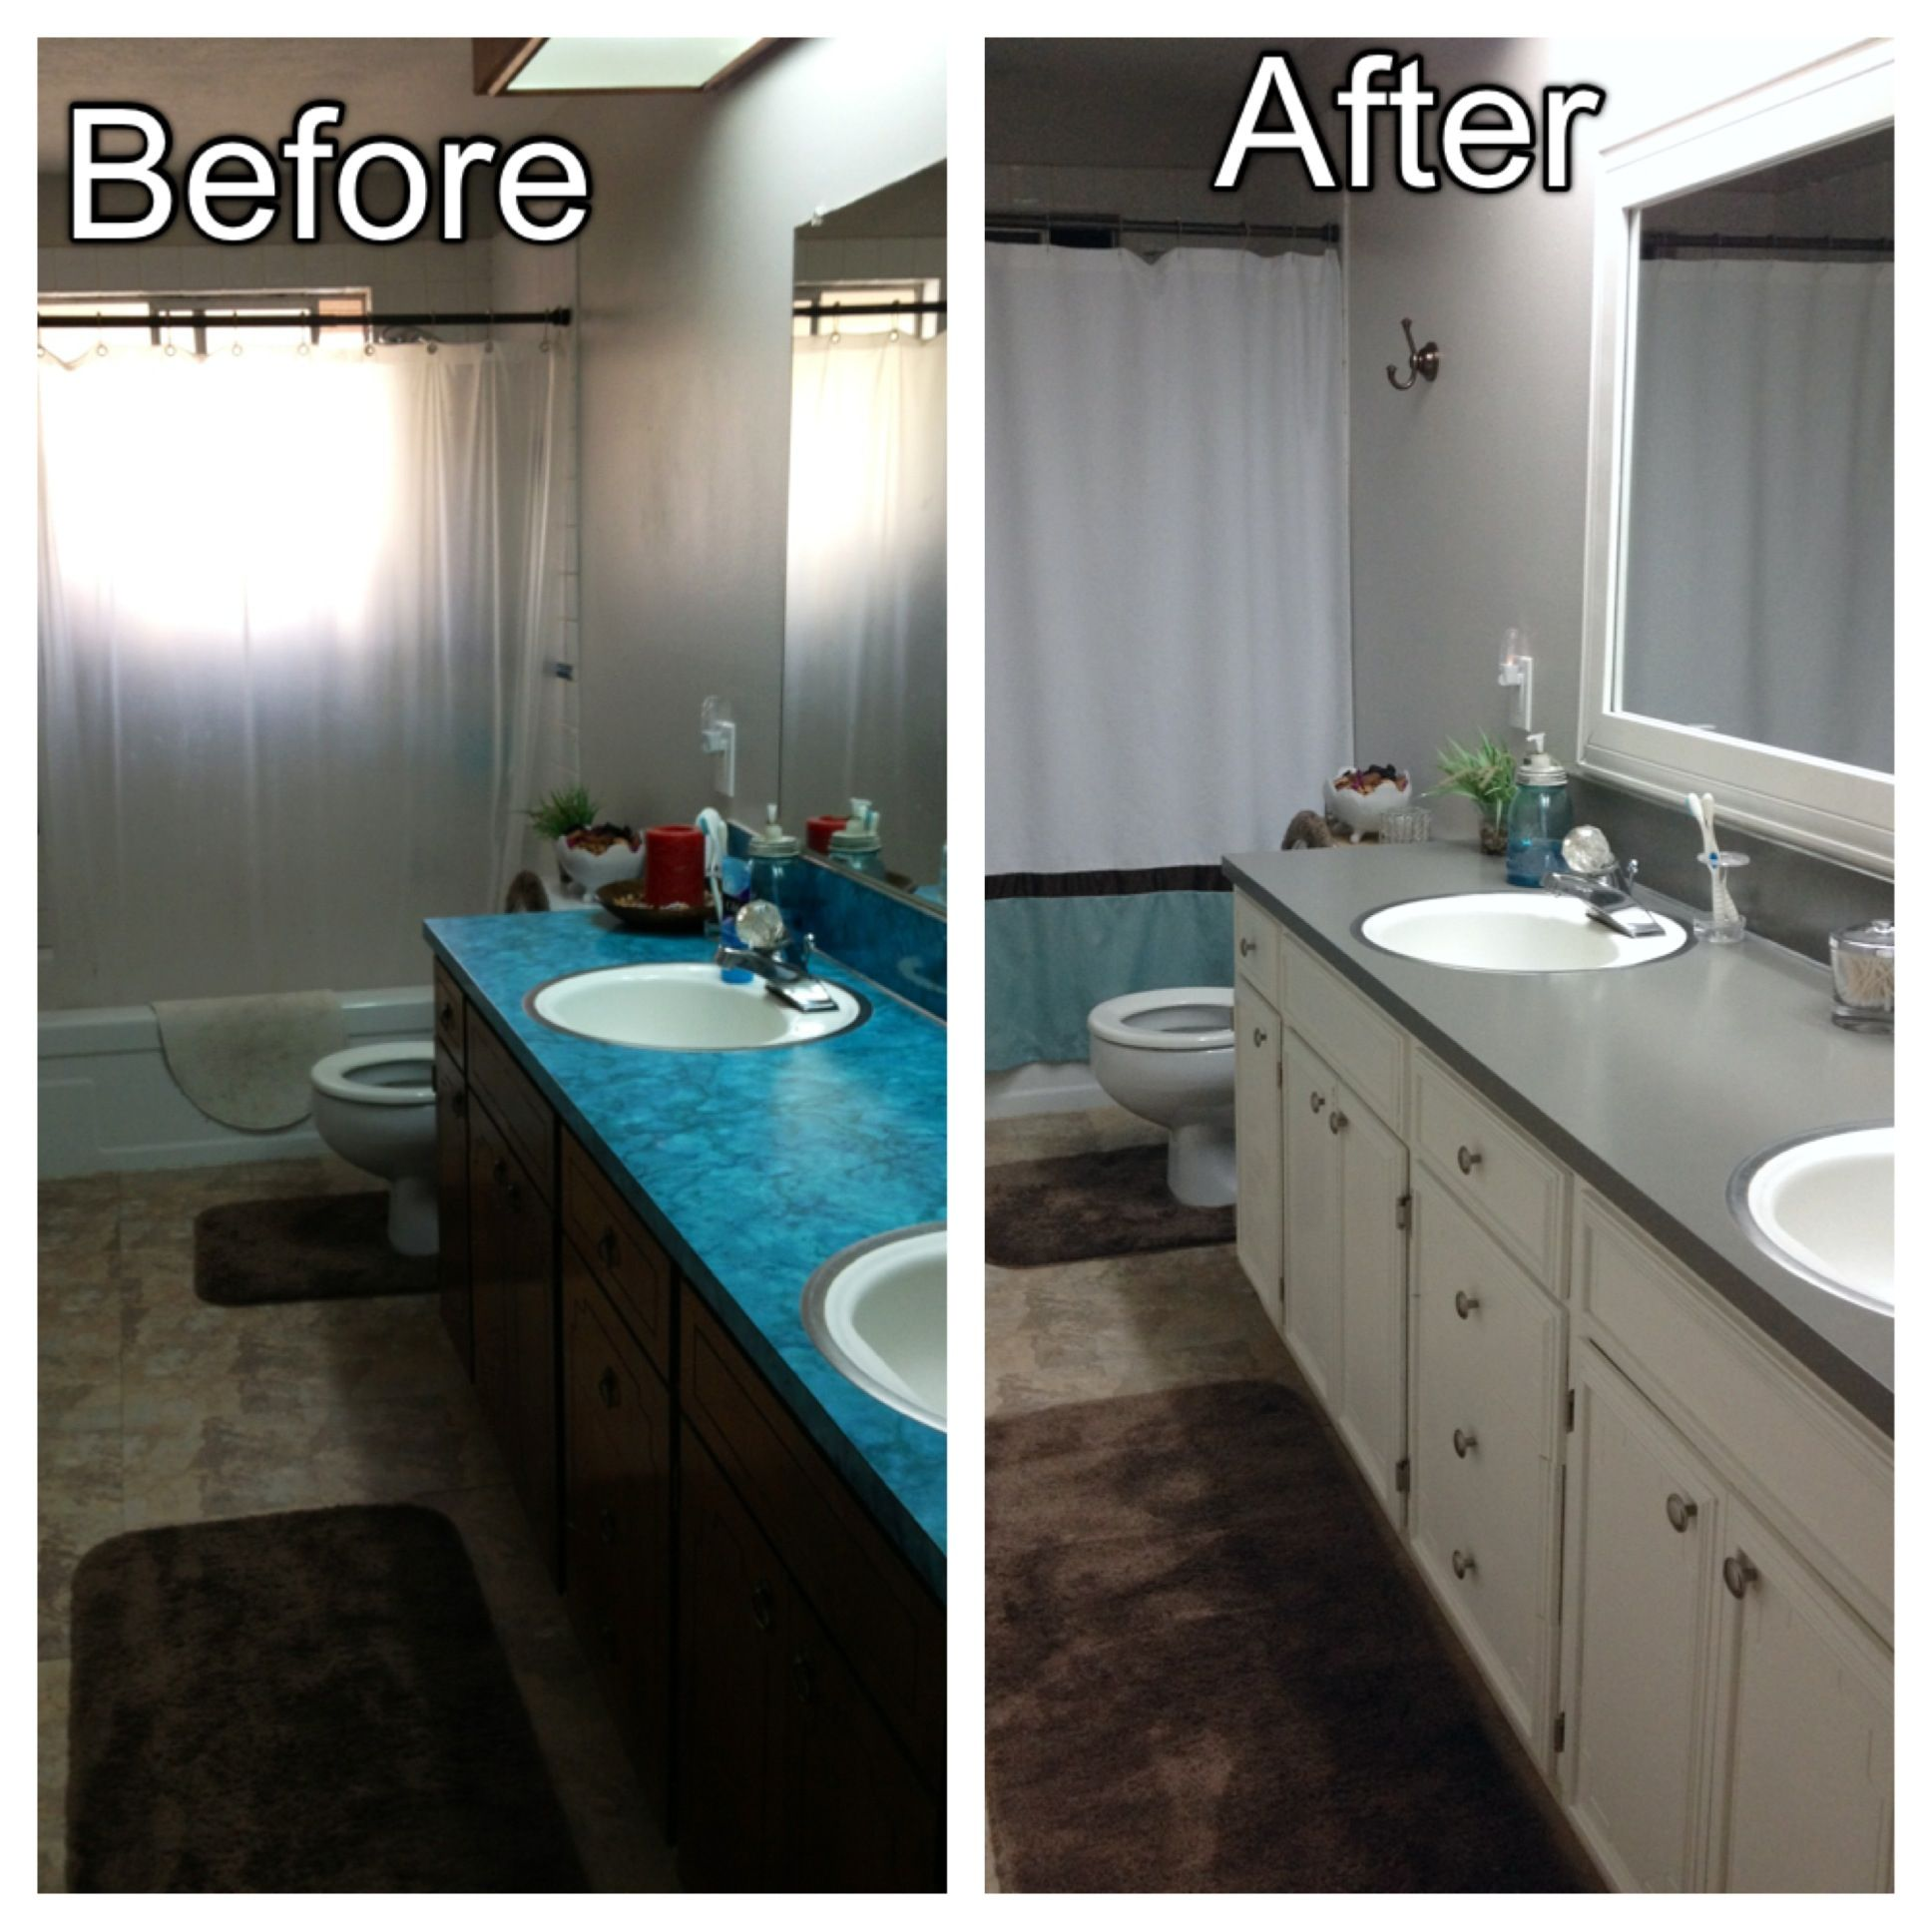 Before and after minor upgrades to our bathroom added for Before and after pictures of painted laminate kitchen cabinets